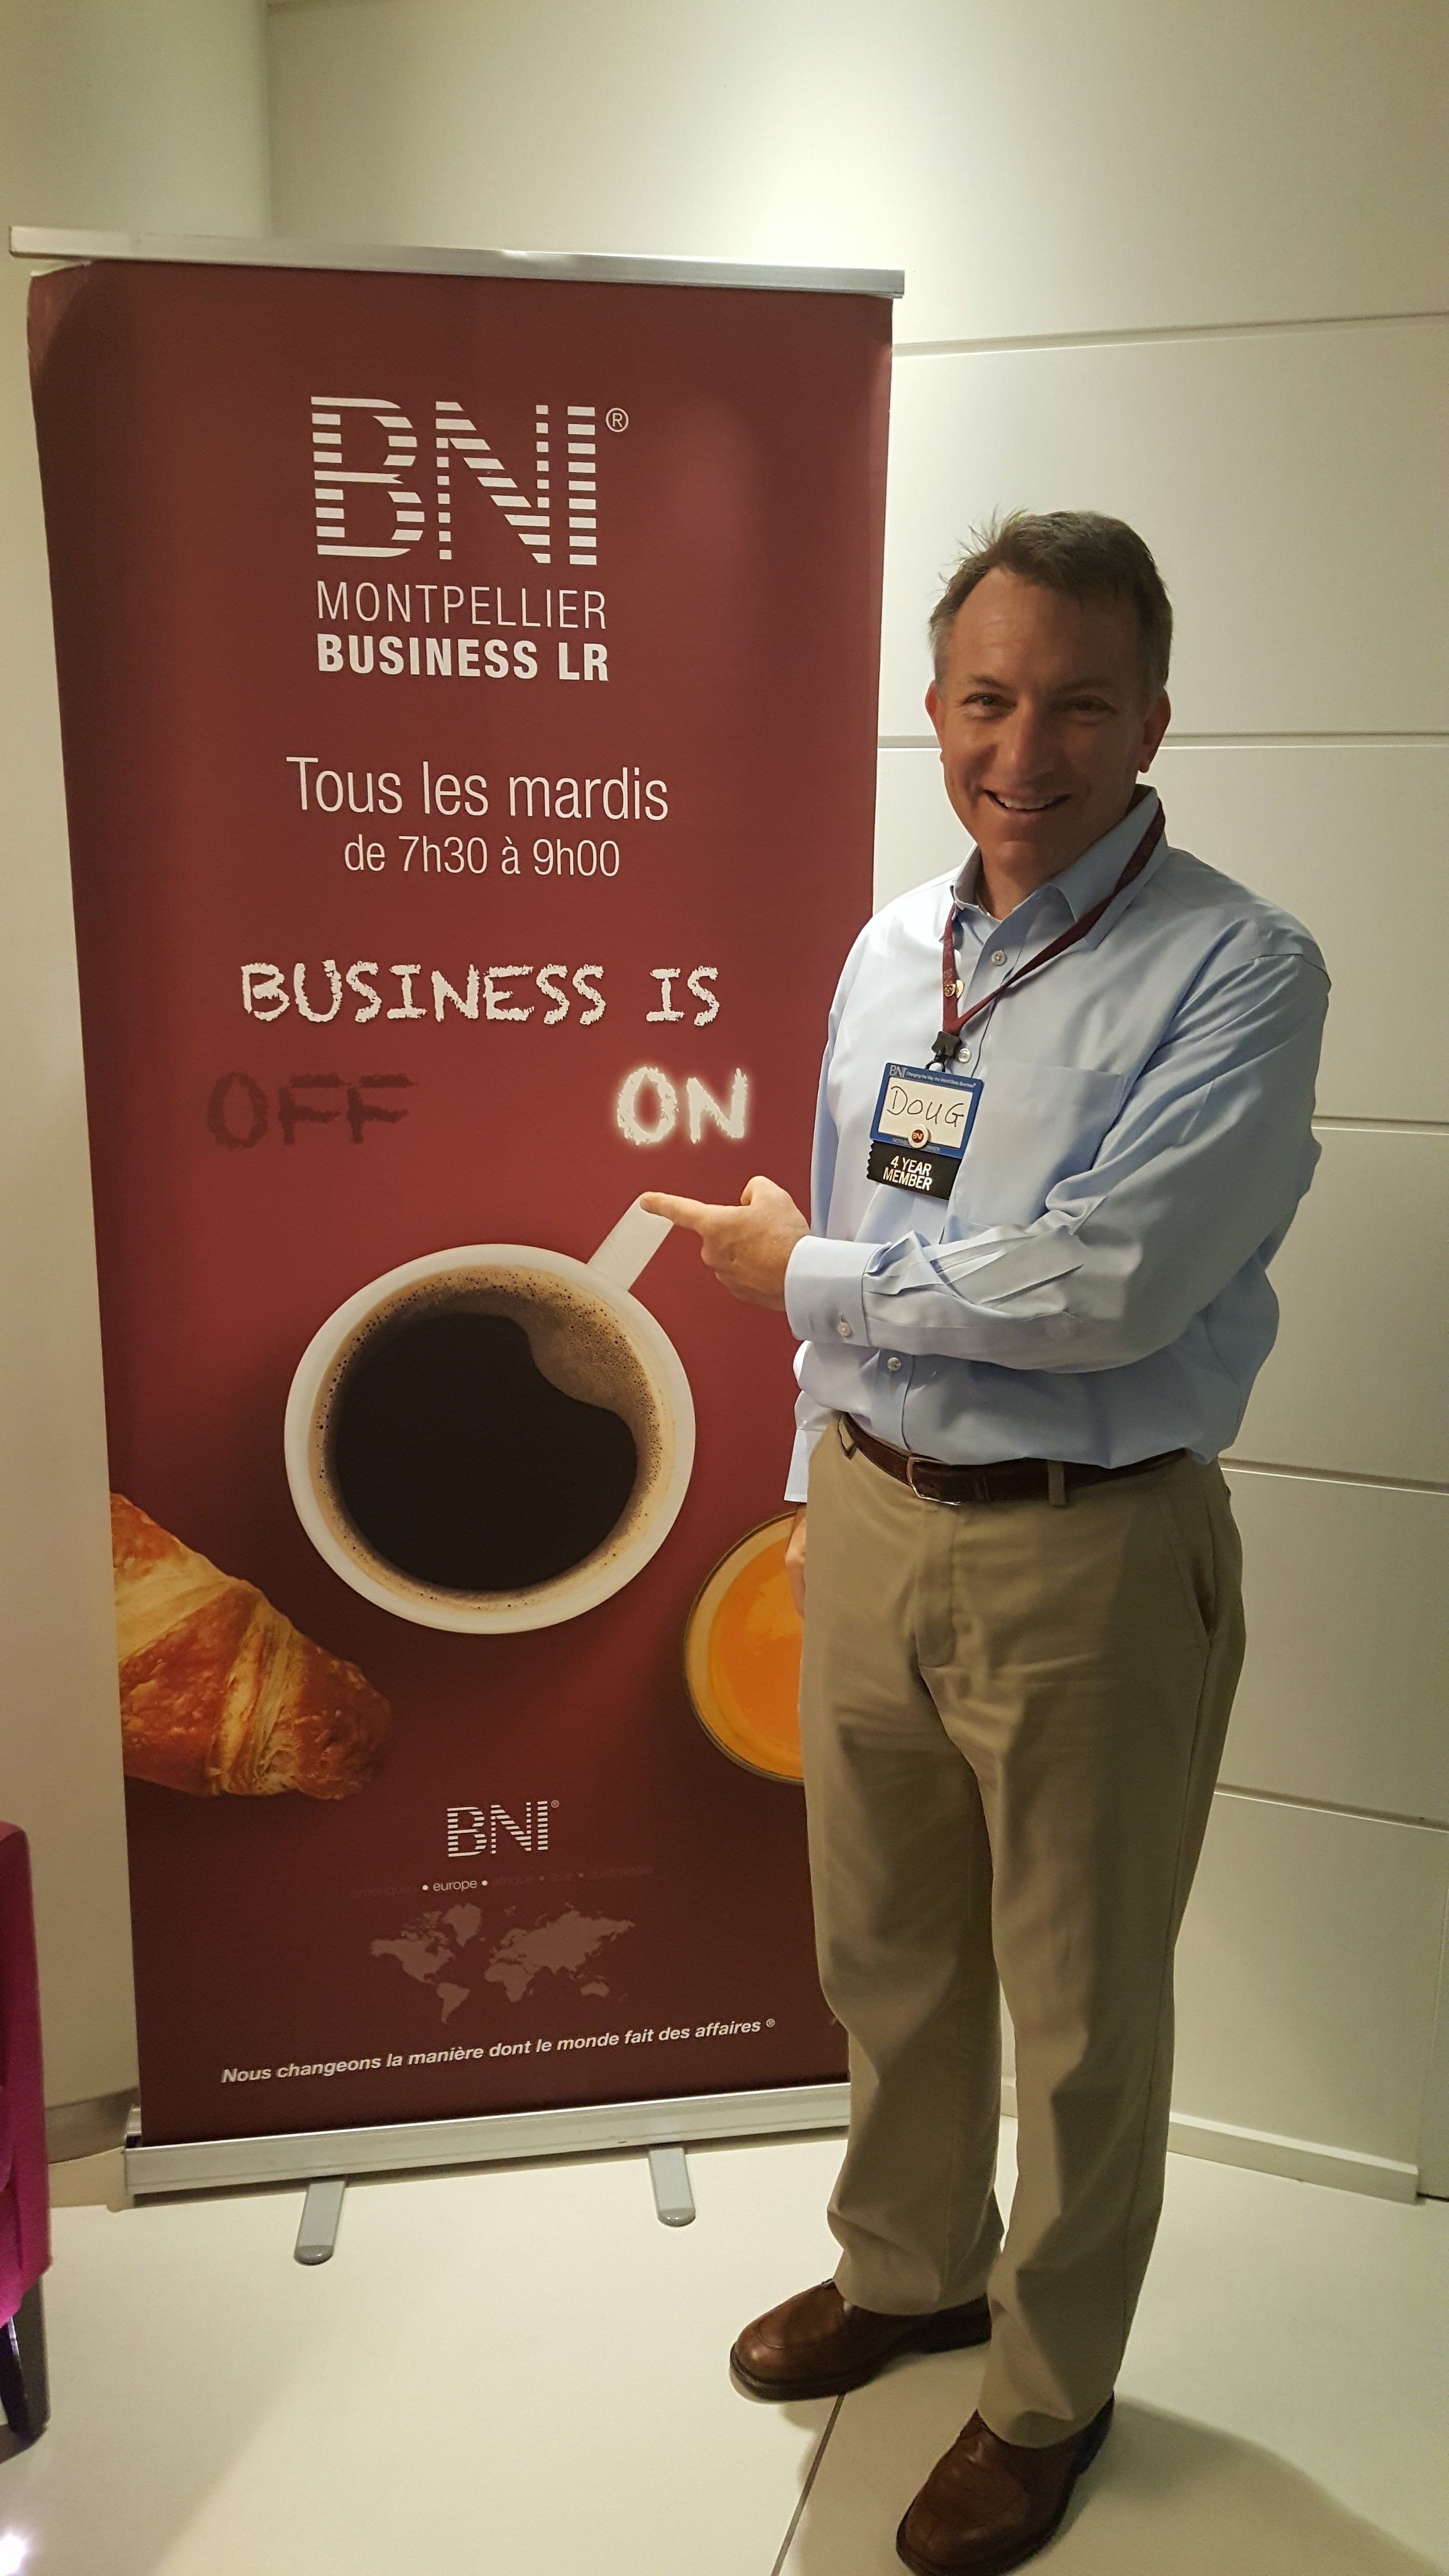 BNI Montpellier! Yes, that's my USA name badge...